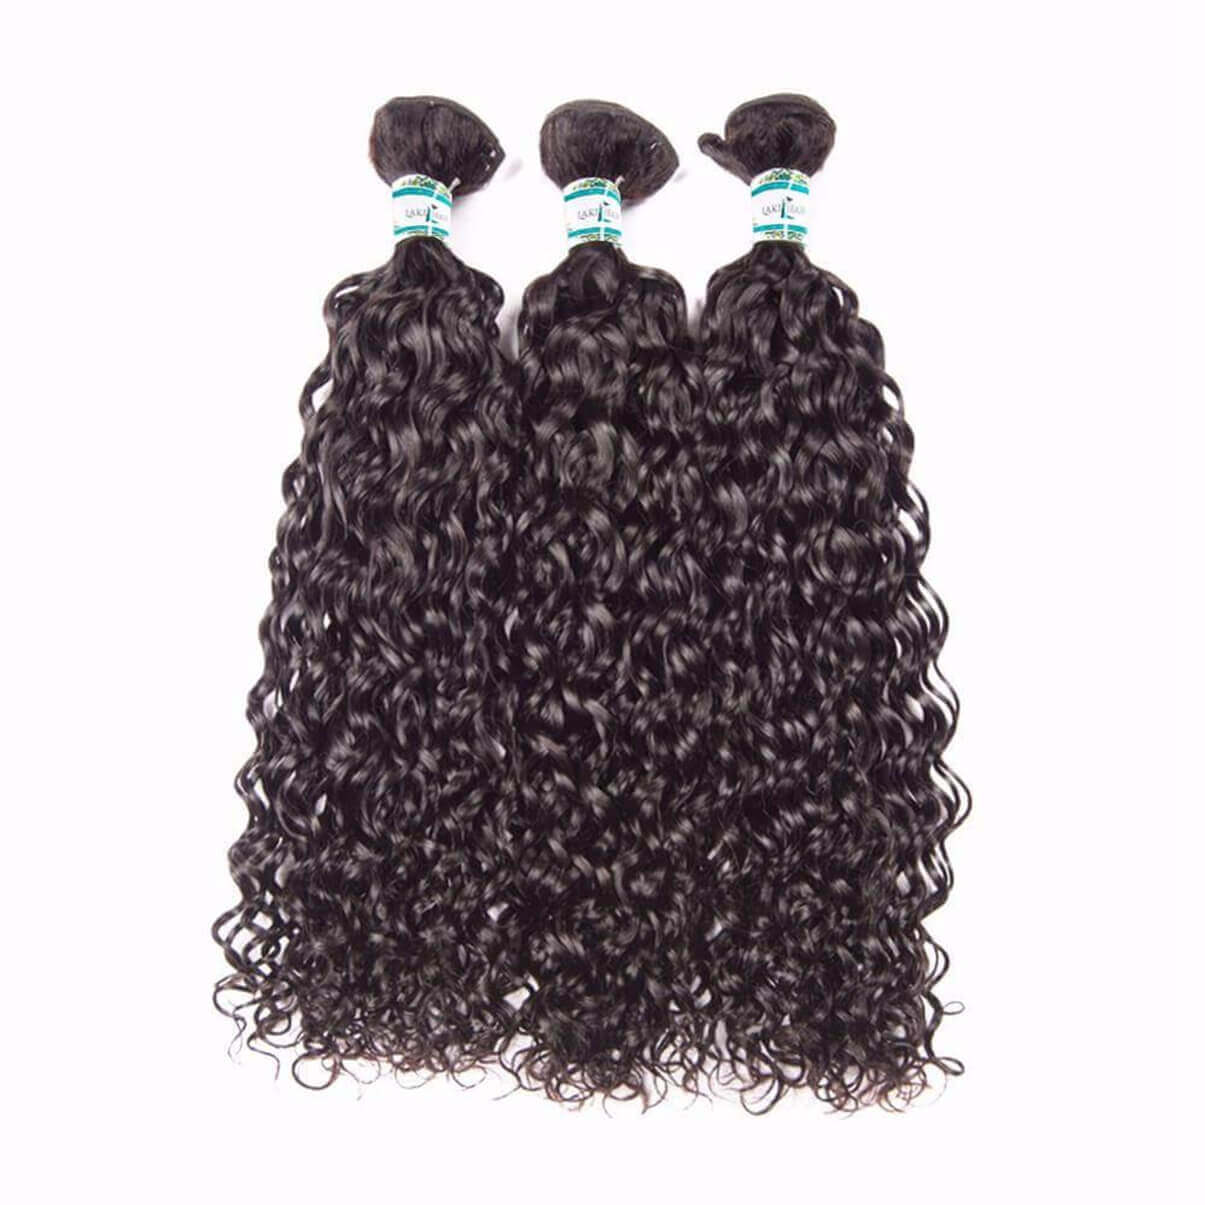 Lakihair 8A Brazilian Water Wave Hair 4 Bundles With Lace Closure 4x4 Virgin Human Hair Bundles